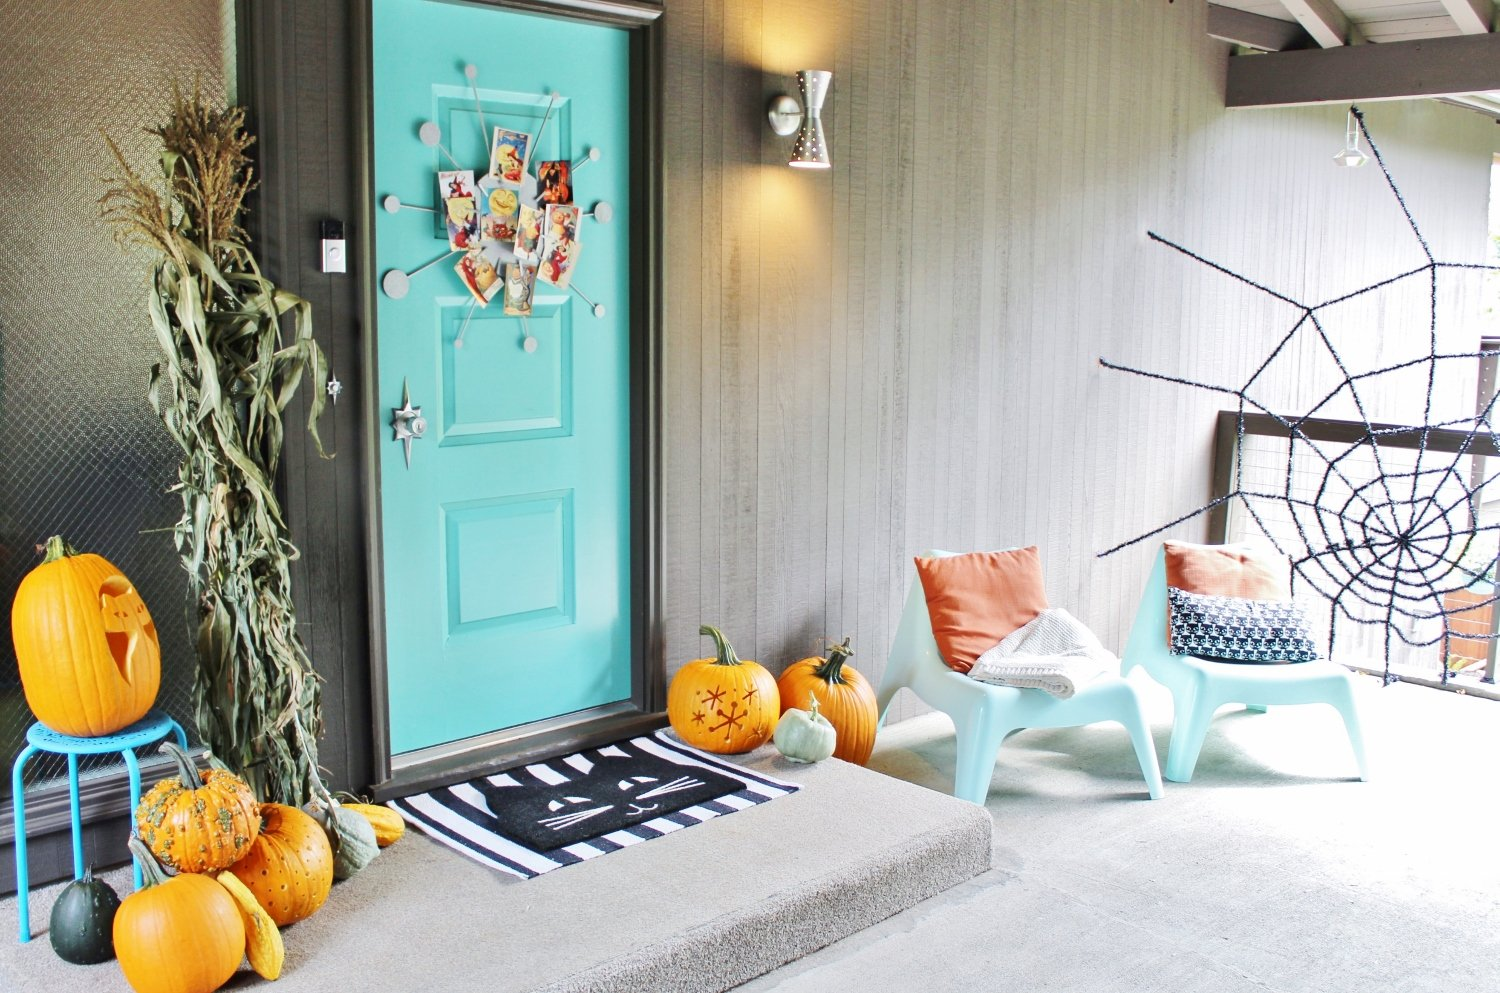 Midcentury modern front porch decorated for Halloween